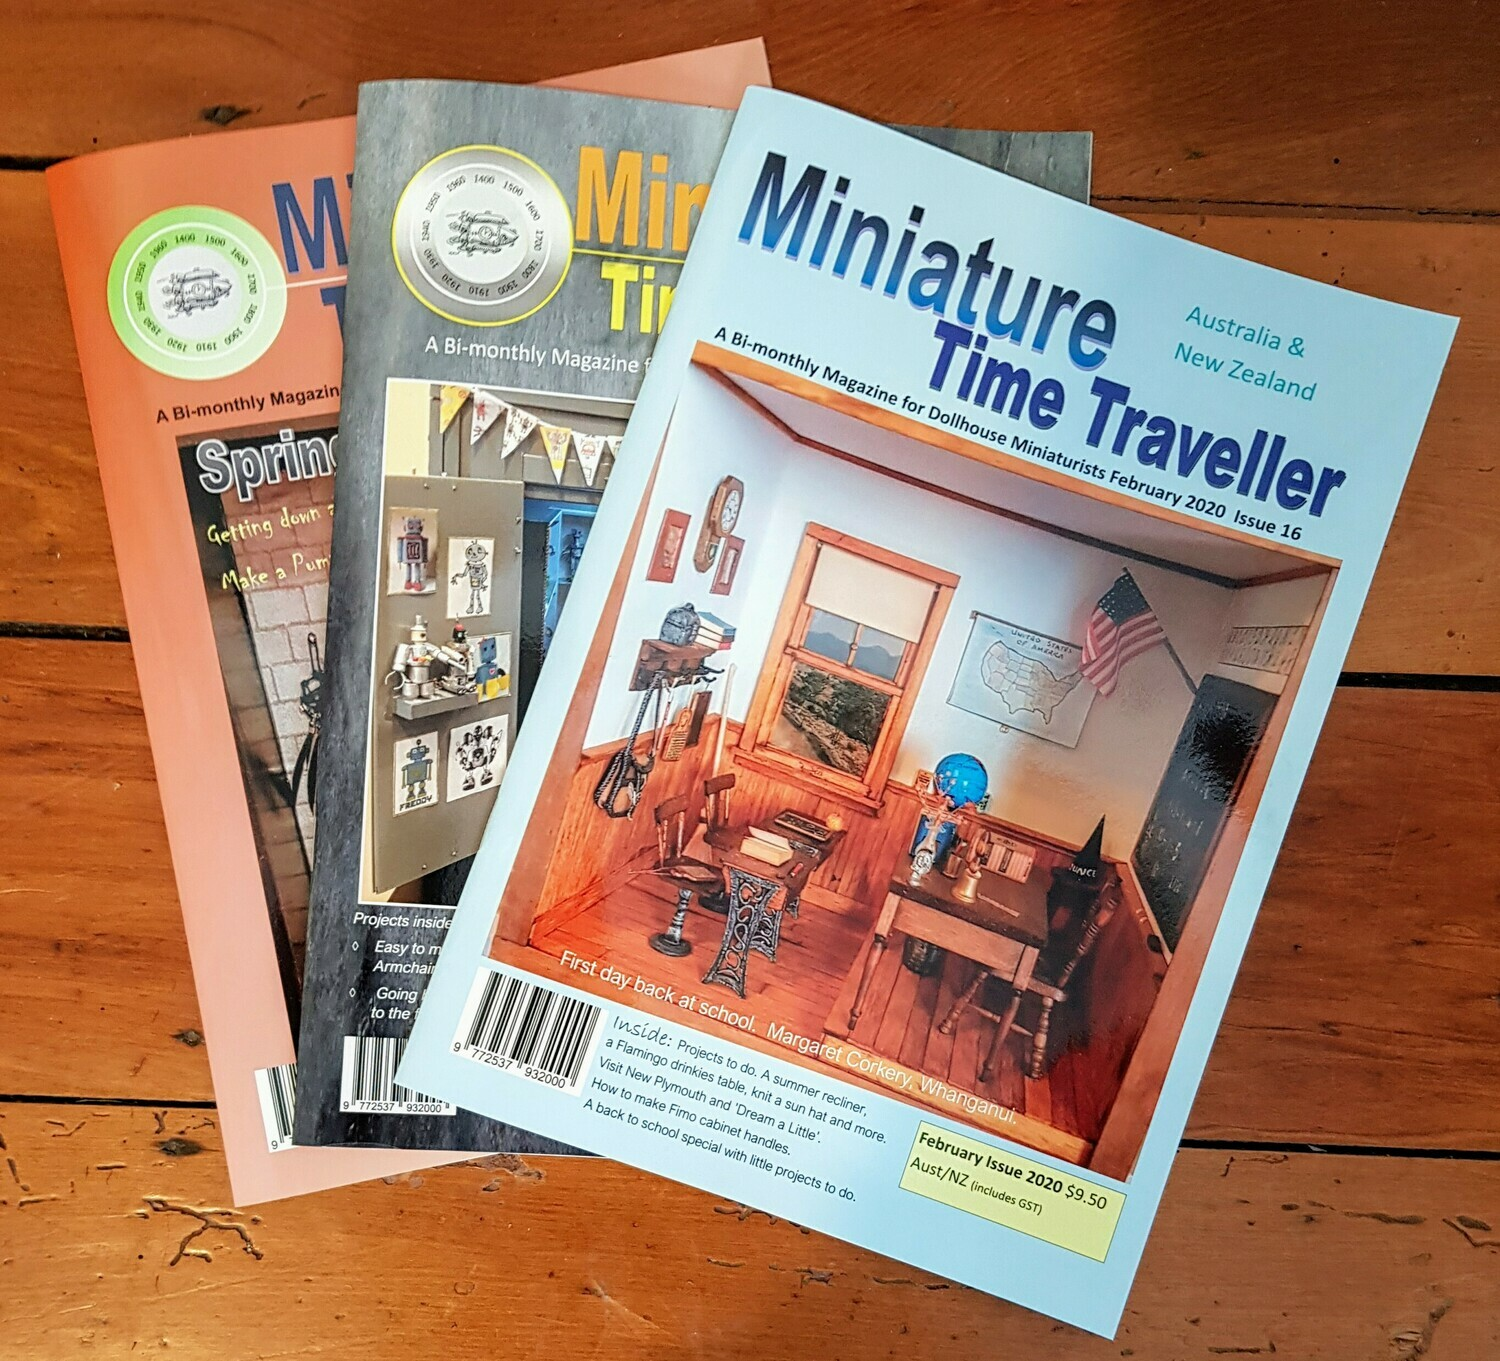 Miniature Time Traveller Magazine - SAVE 20% with Annual subscription - 6 Copies. Taxes & P&P included. This is listing is for AUSTRALIA & SOUTH PACIFIC only. See separate listings for other countries